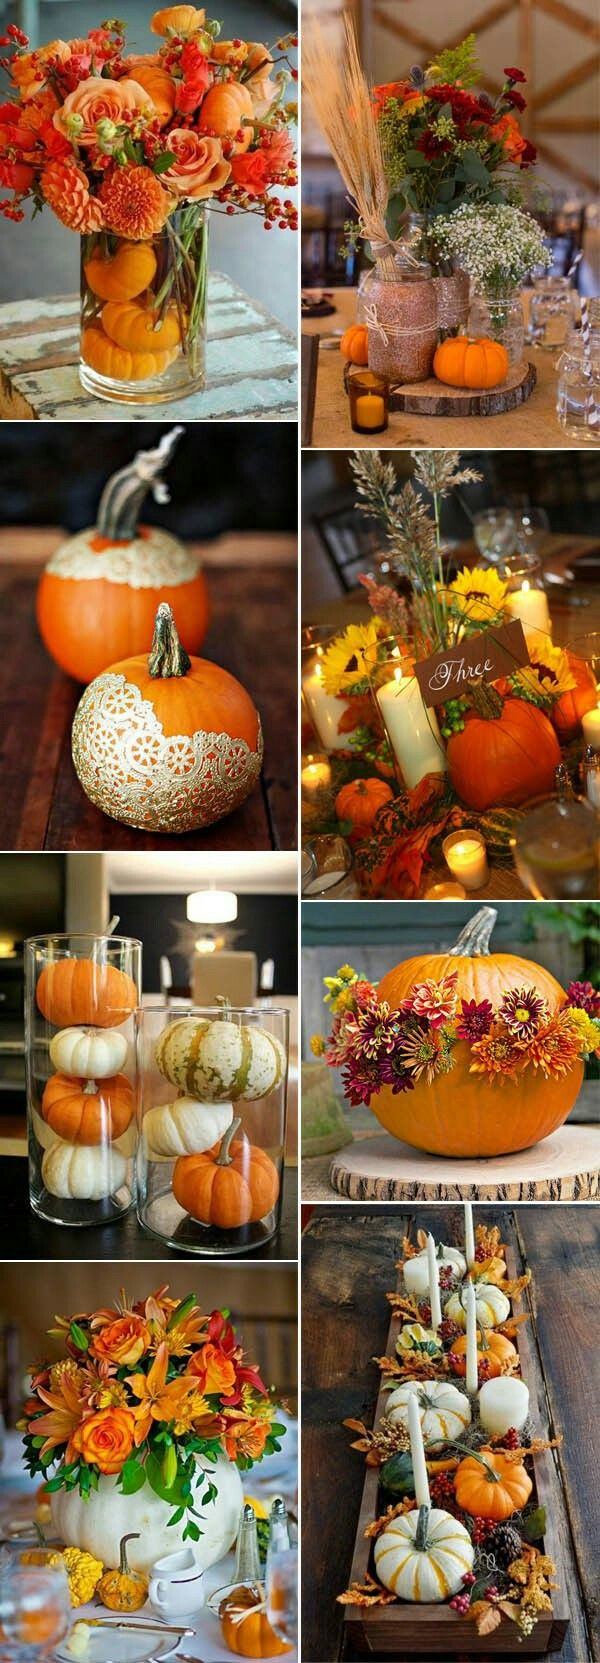 Fall Decor - Table Decor and Centerpieces